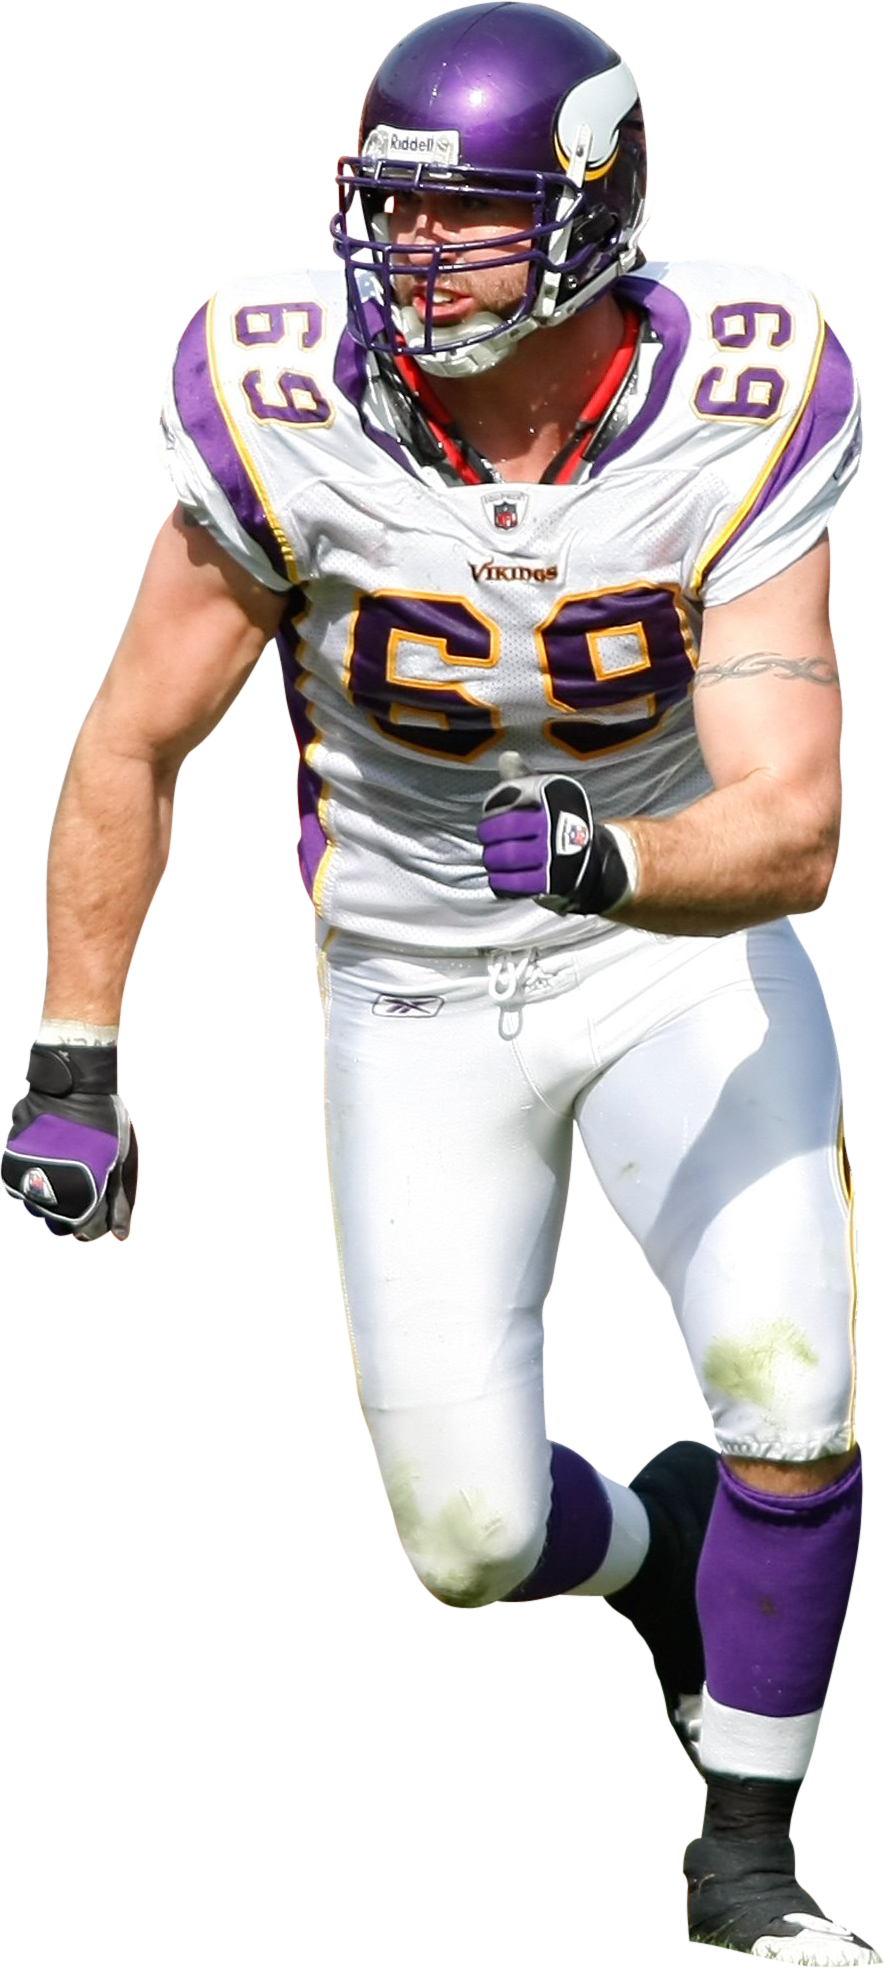 Nfl png players. American football player image